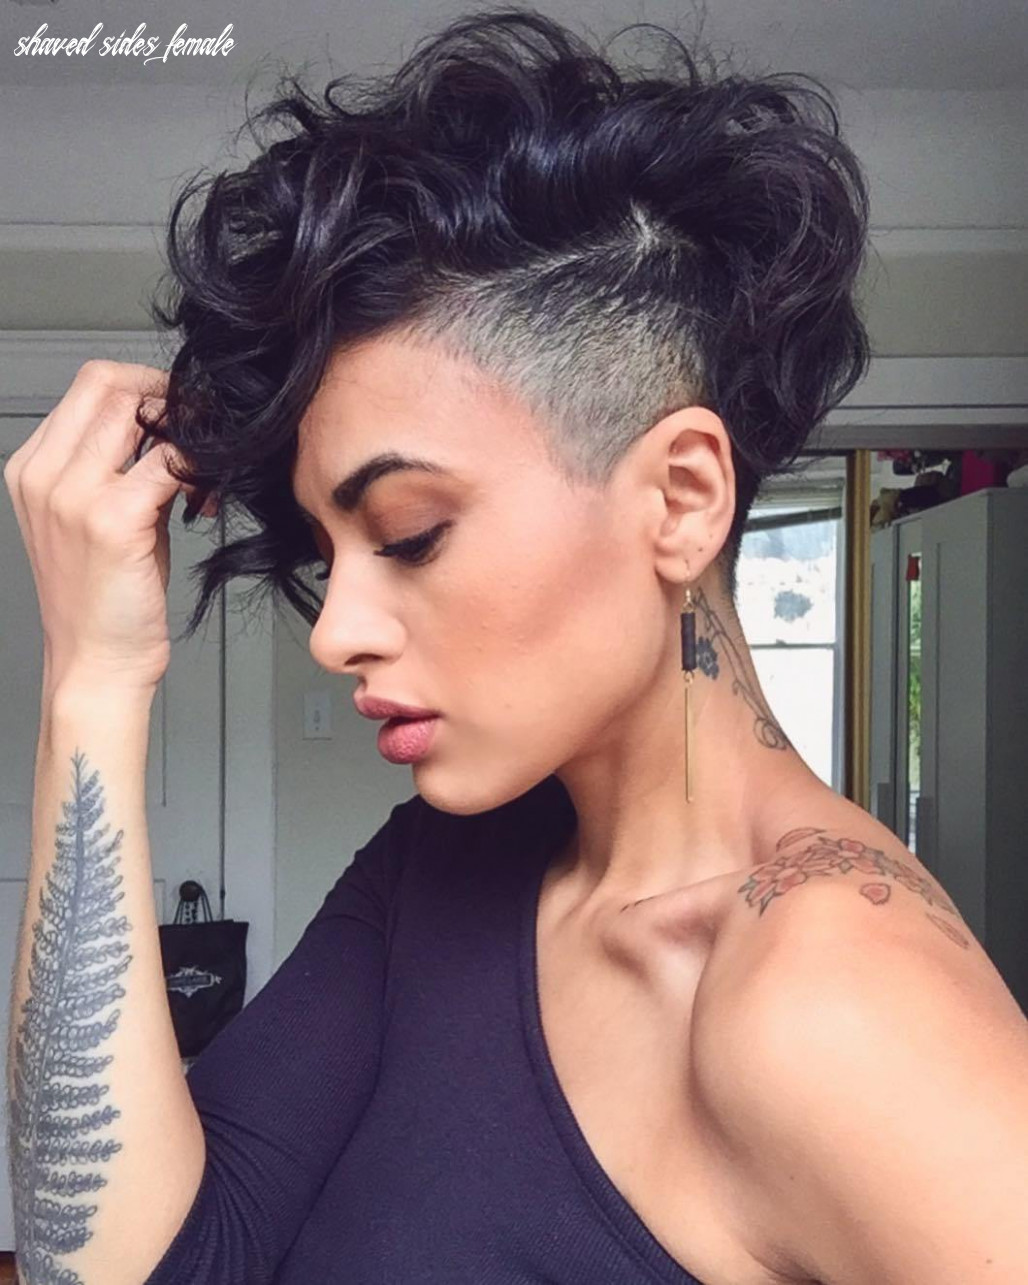 11 bold shaved hairstyles for women | shaved hair designs shaved sides female